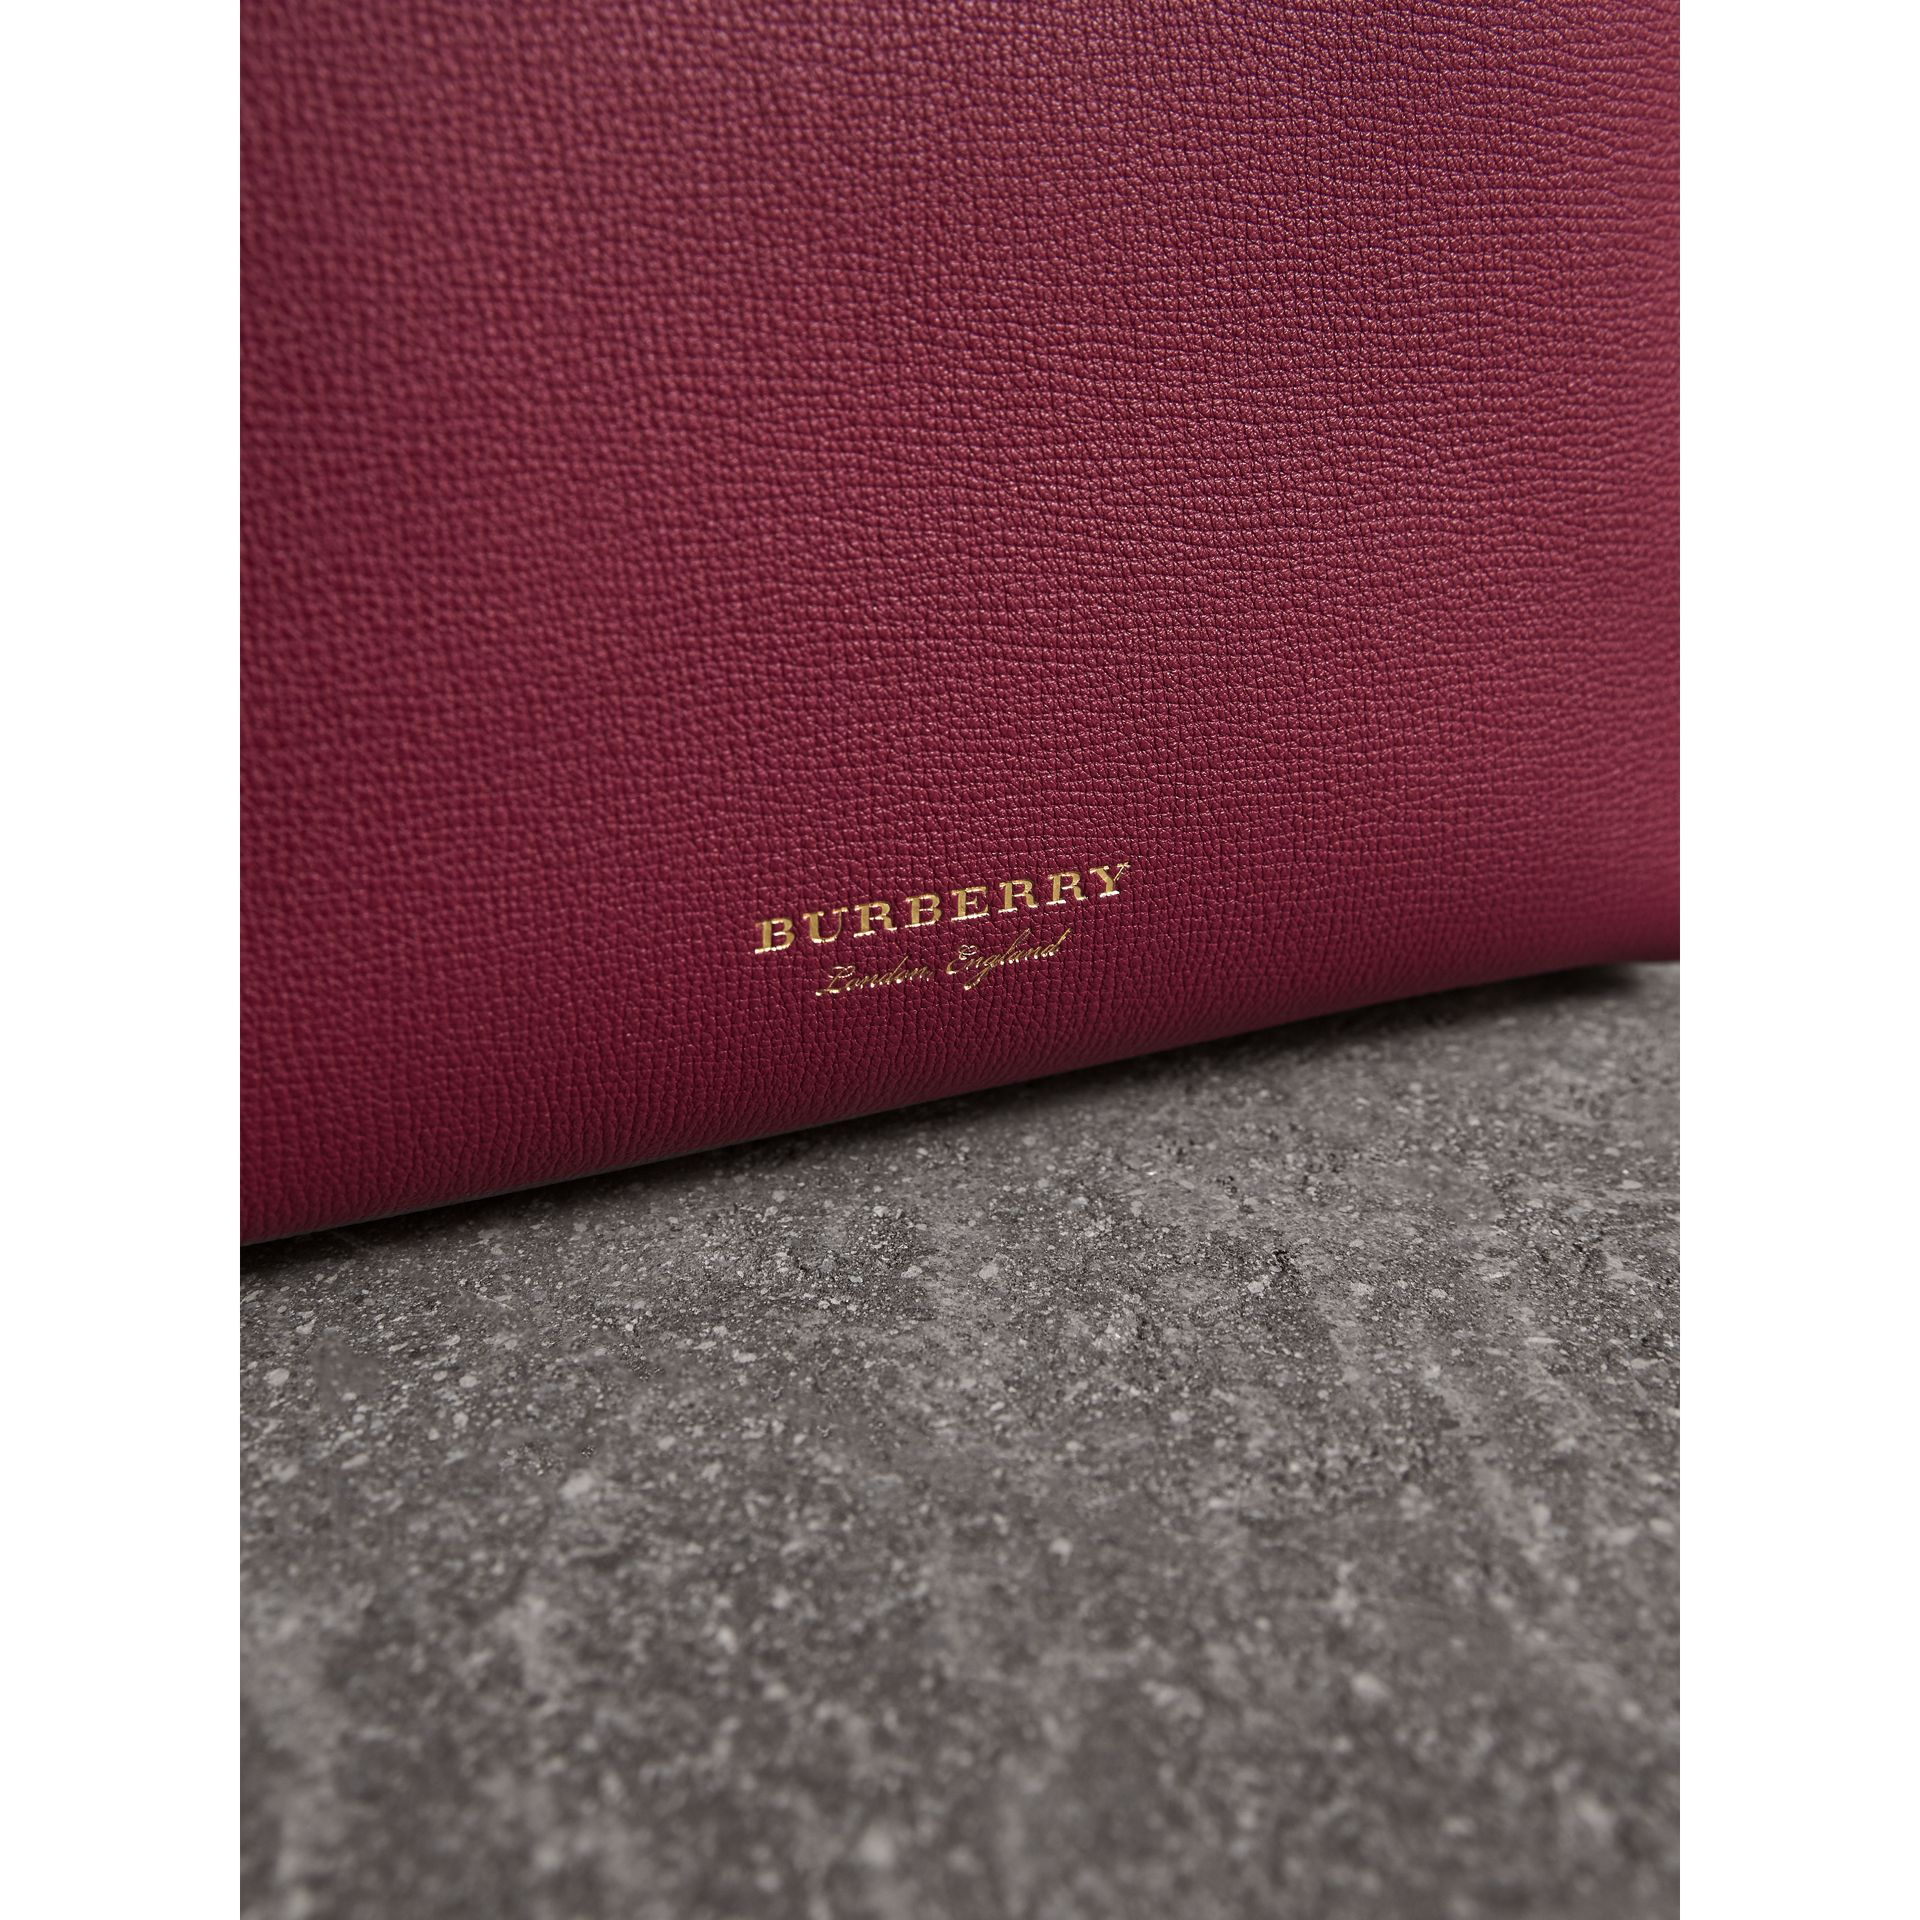 The Small Banner in Two-tone Leather in Berry Pink - Women | Burberry - gallery image 1